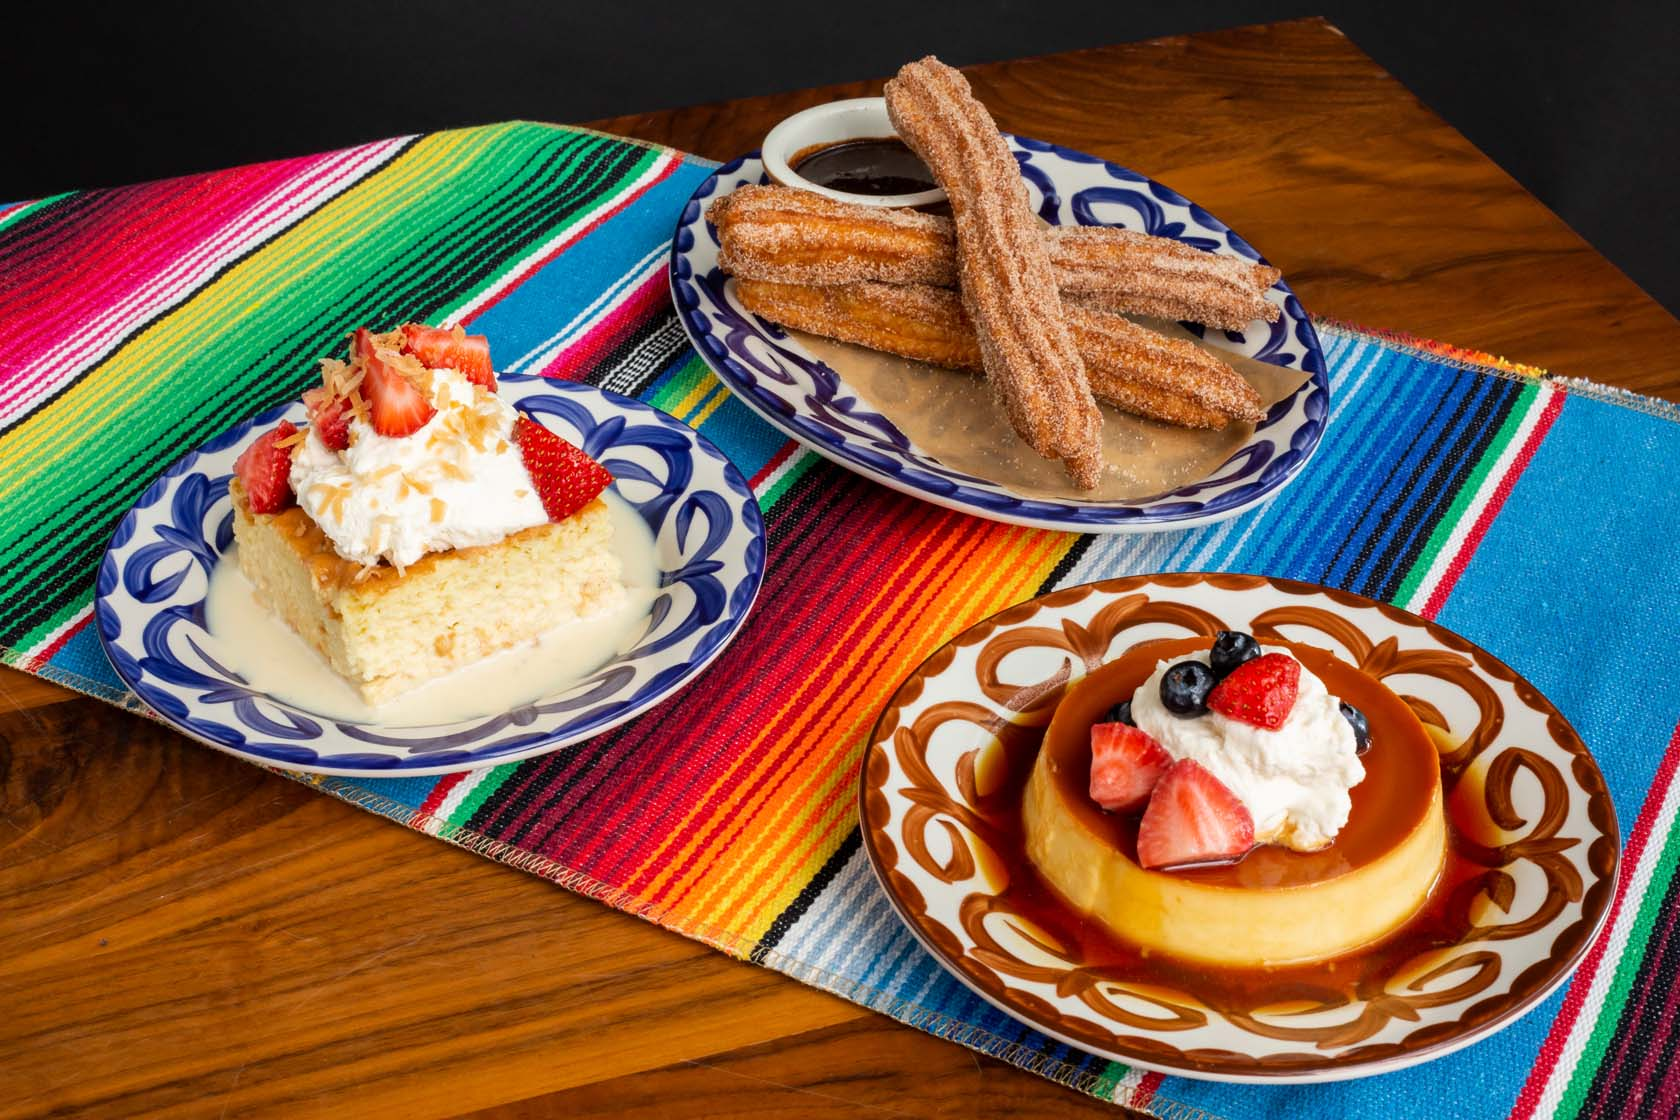 Three plated Mexican desserts - tres leches cake, churros and flan.